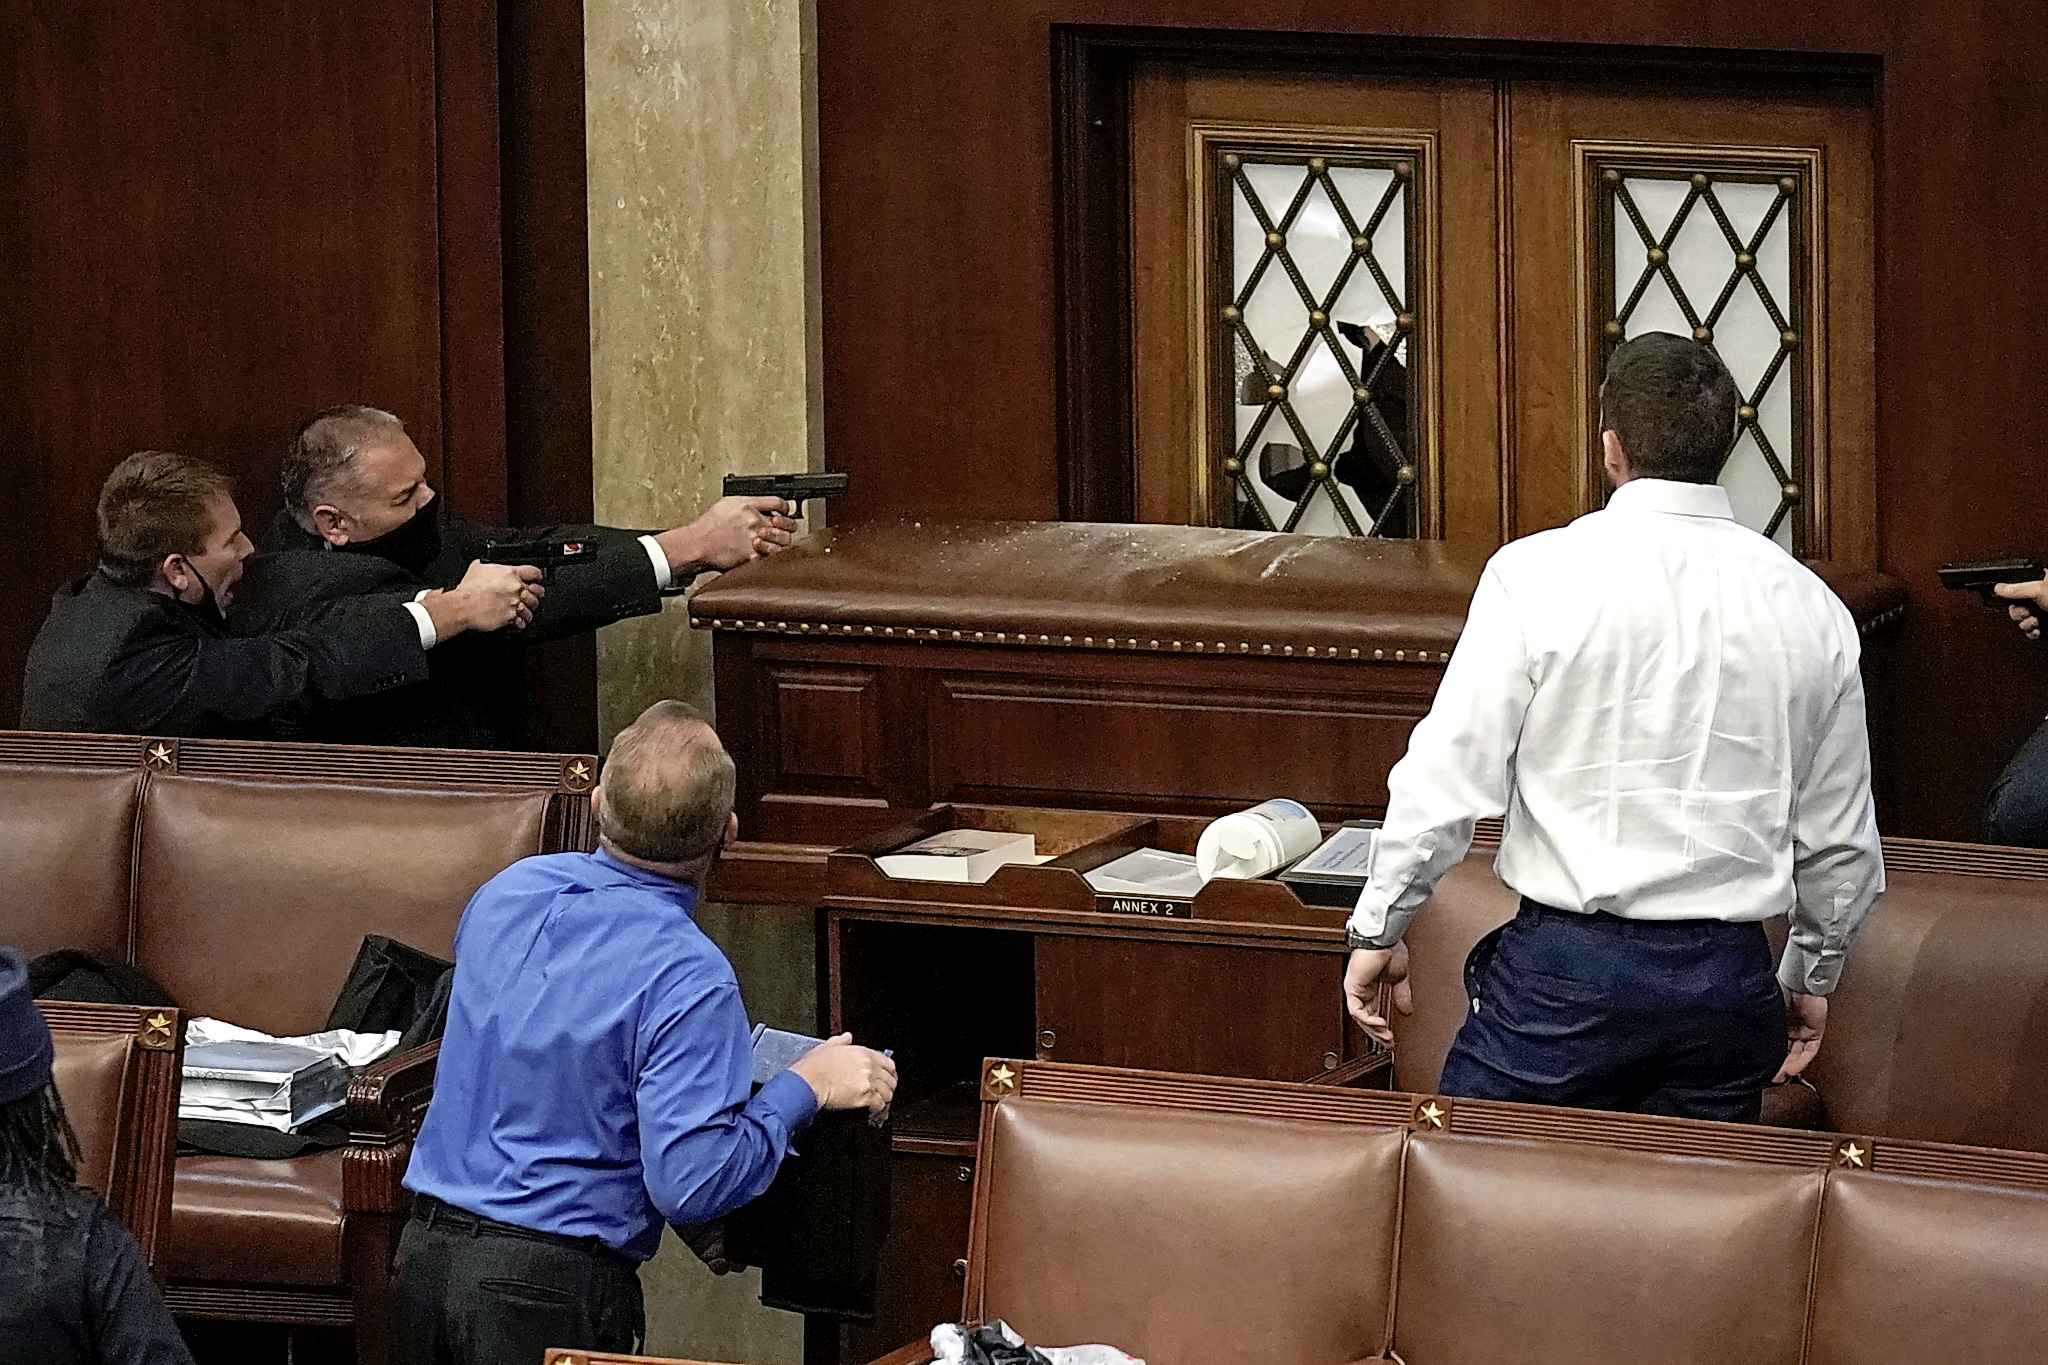 Police with guns drawn watch as protesters try to break into the House Chamber at the U.S. Capitol on Wednesday, Jan. 6, 2021, in Washington. (AP Photo/J. Scott Applewhite)